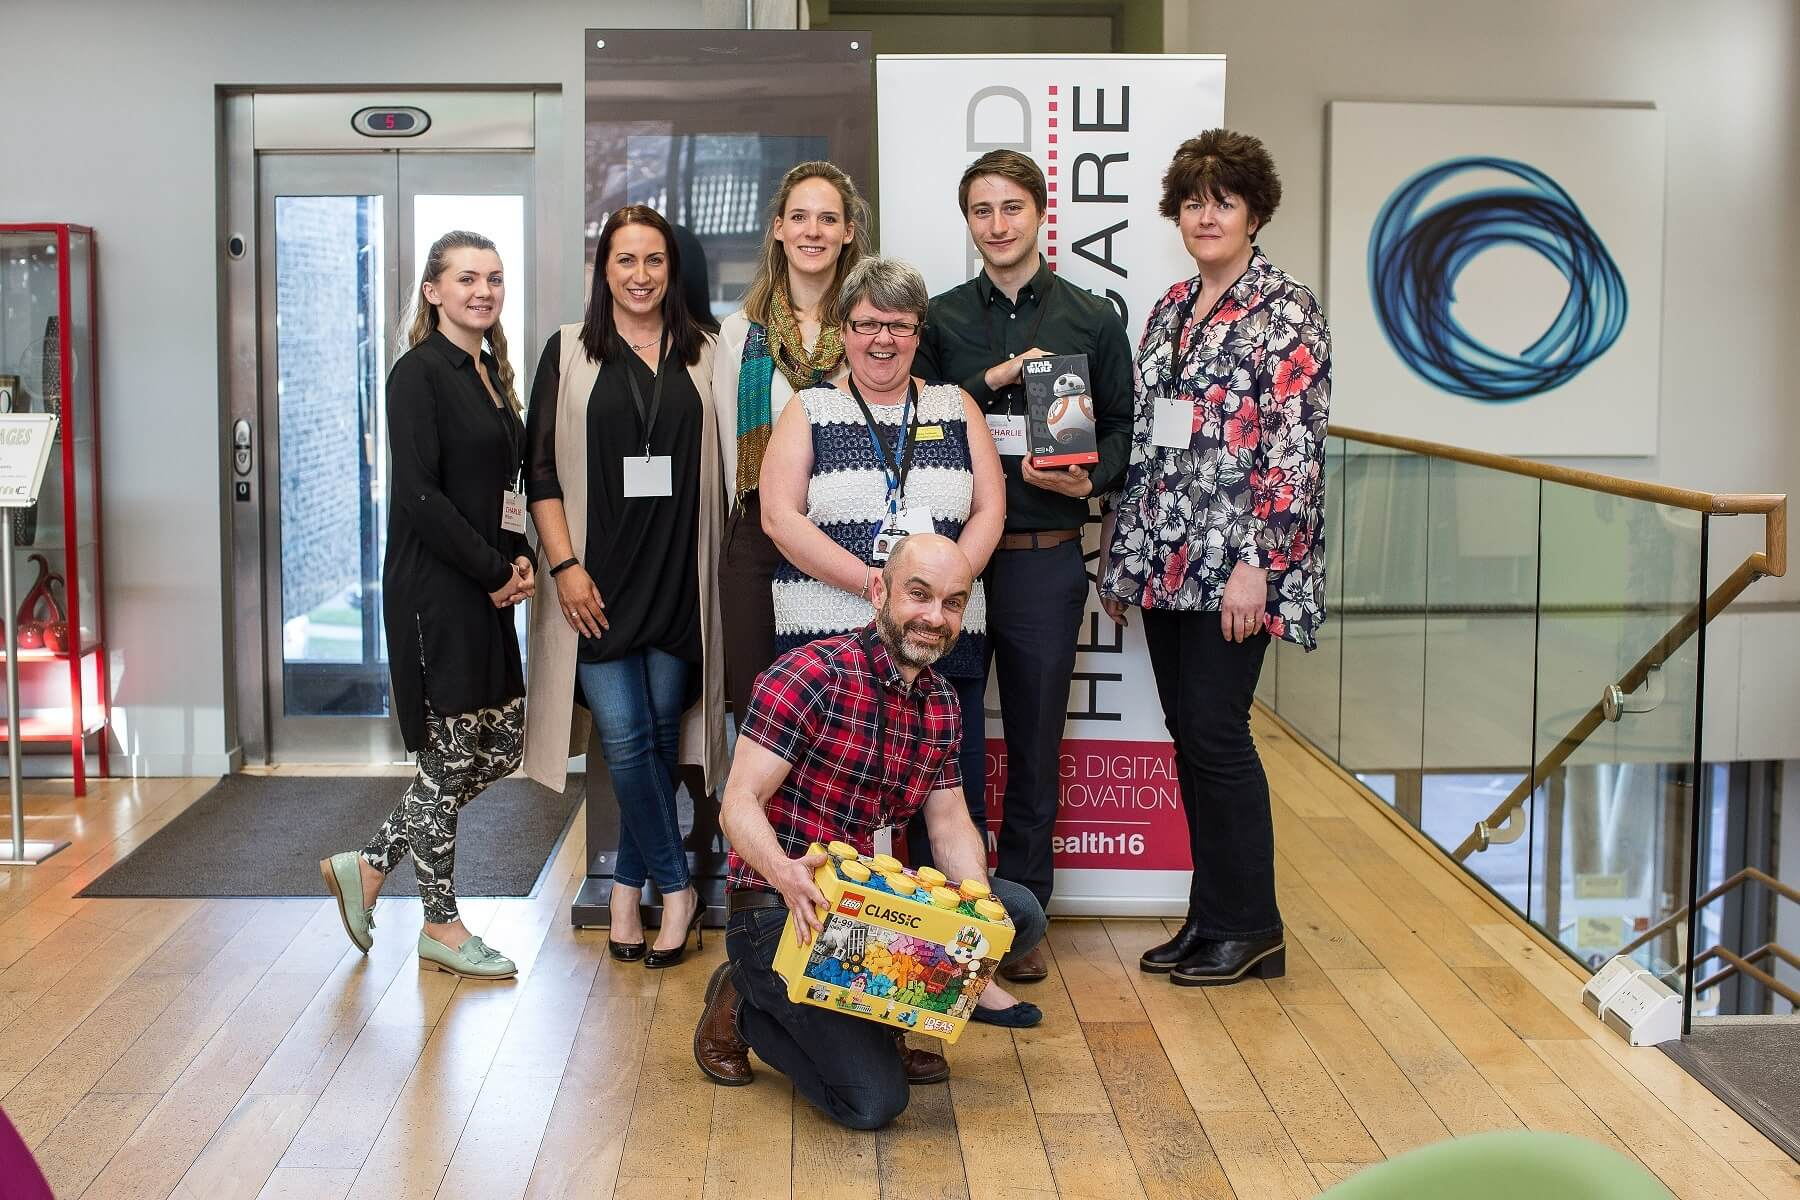 Prototypes to improve healthcare are celebrated at design challenge